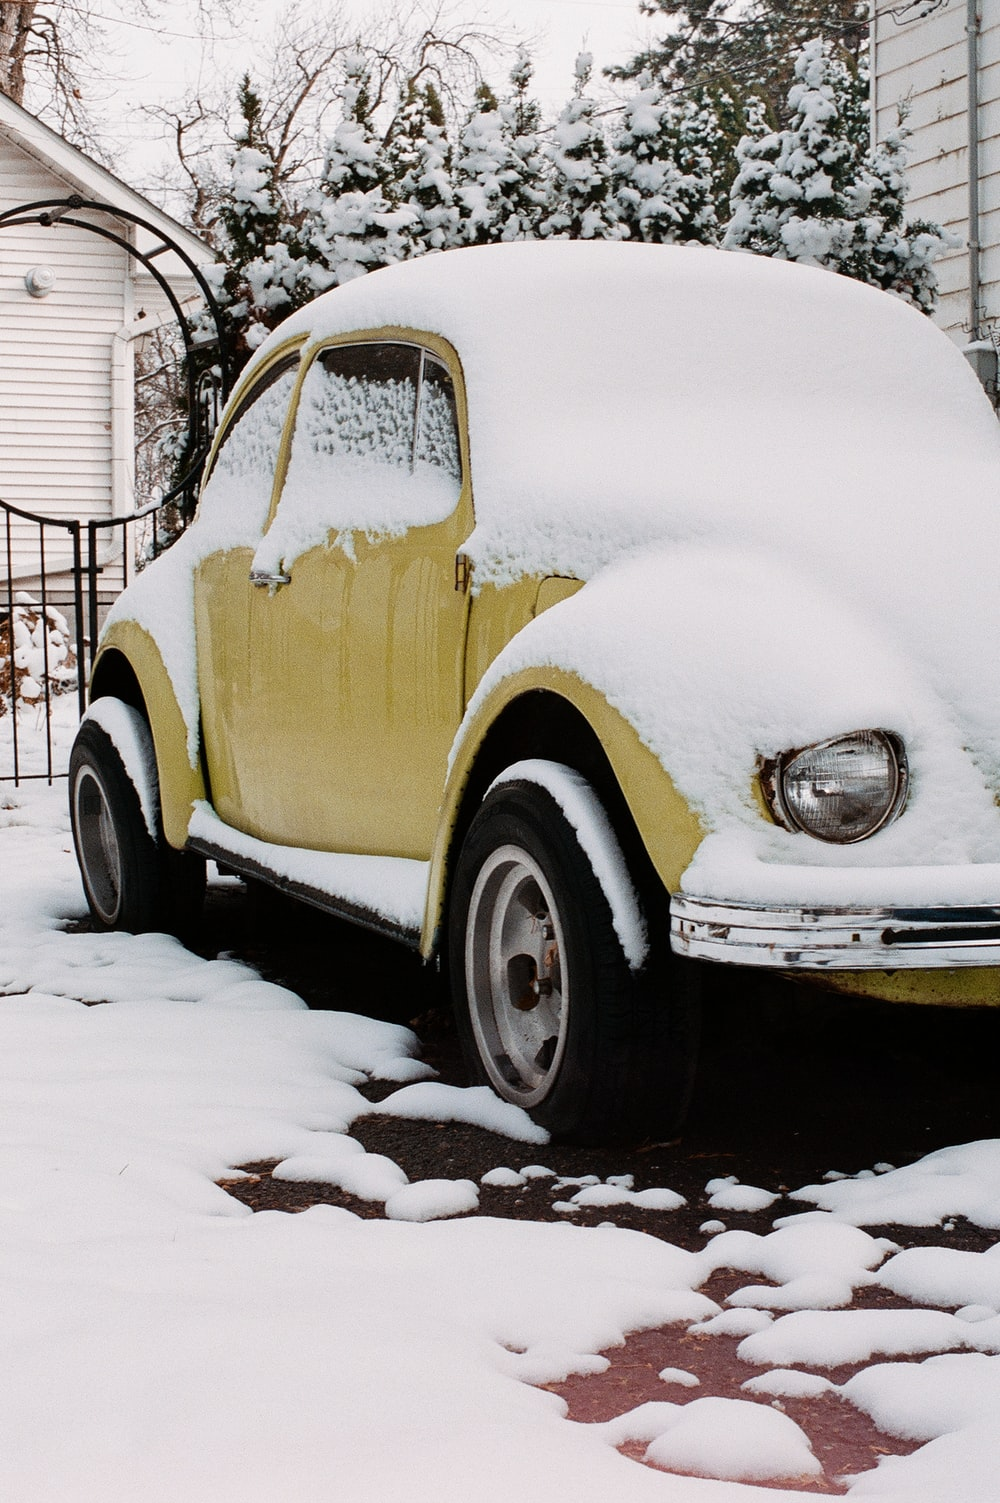 white and brown vintage car covered with snow